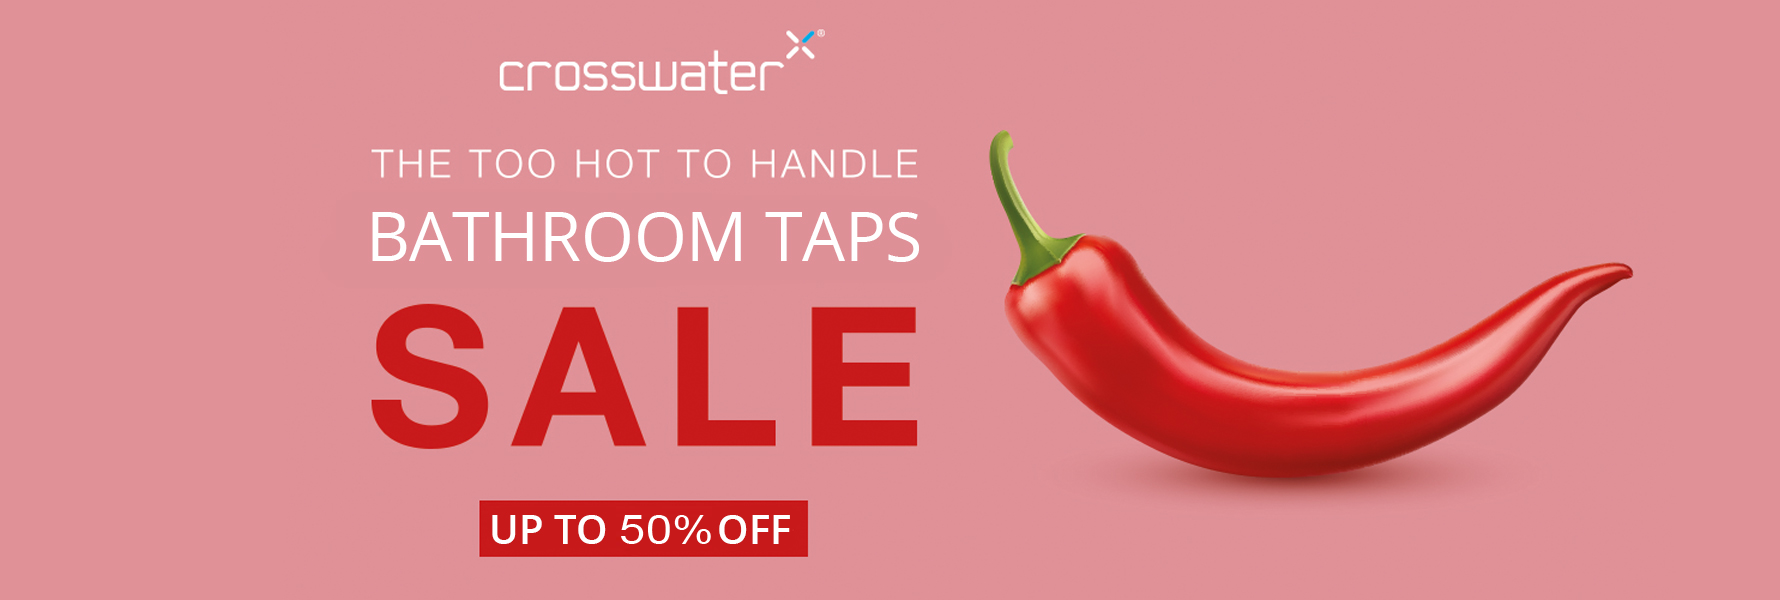 Crosswater Bathroom taps Sale